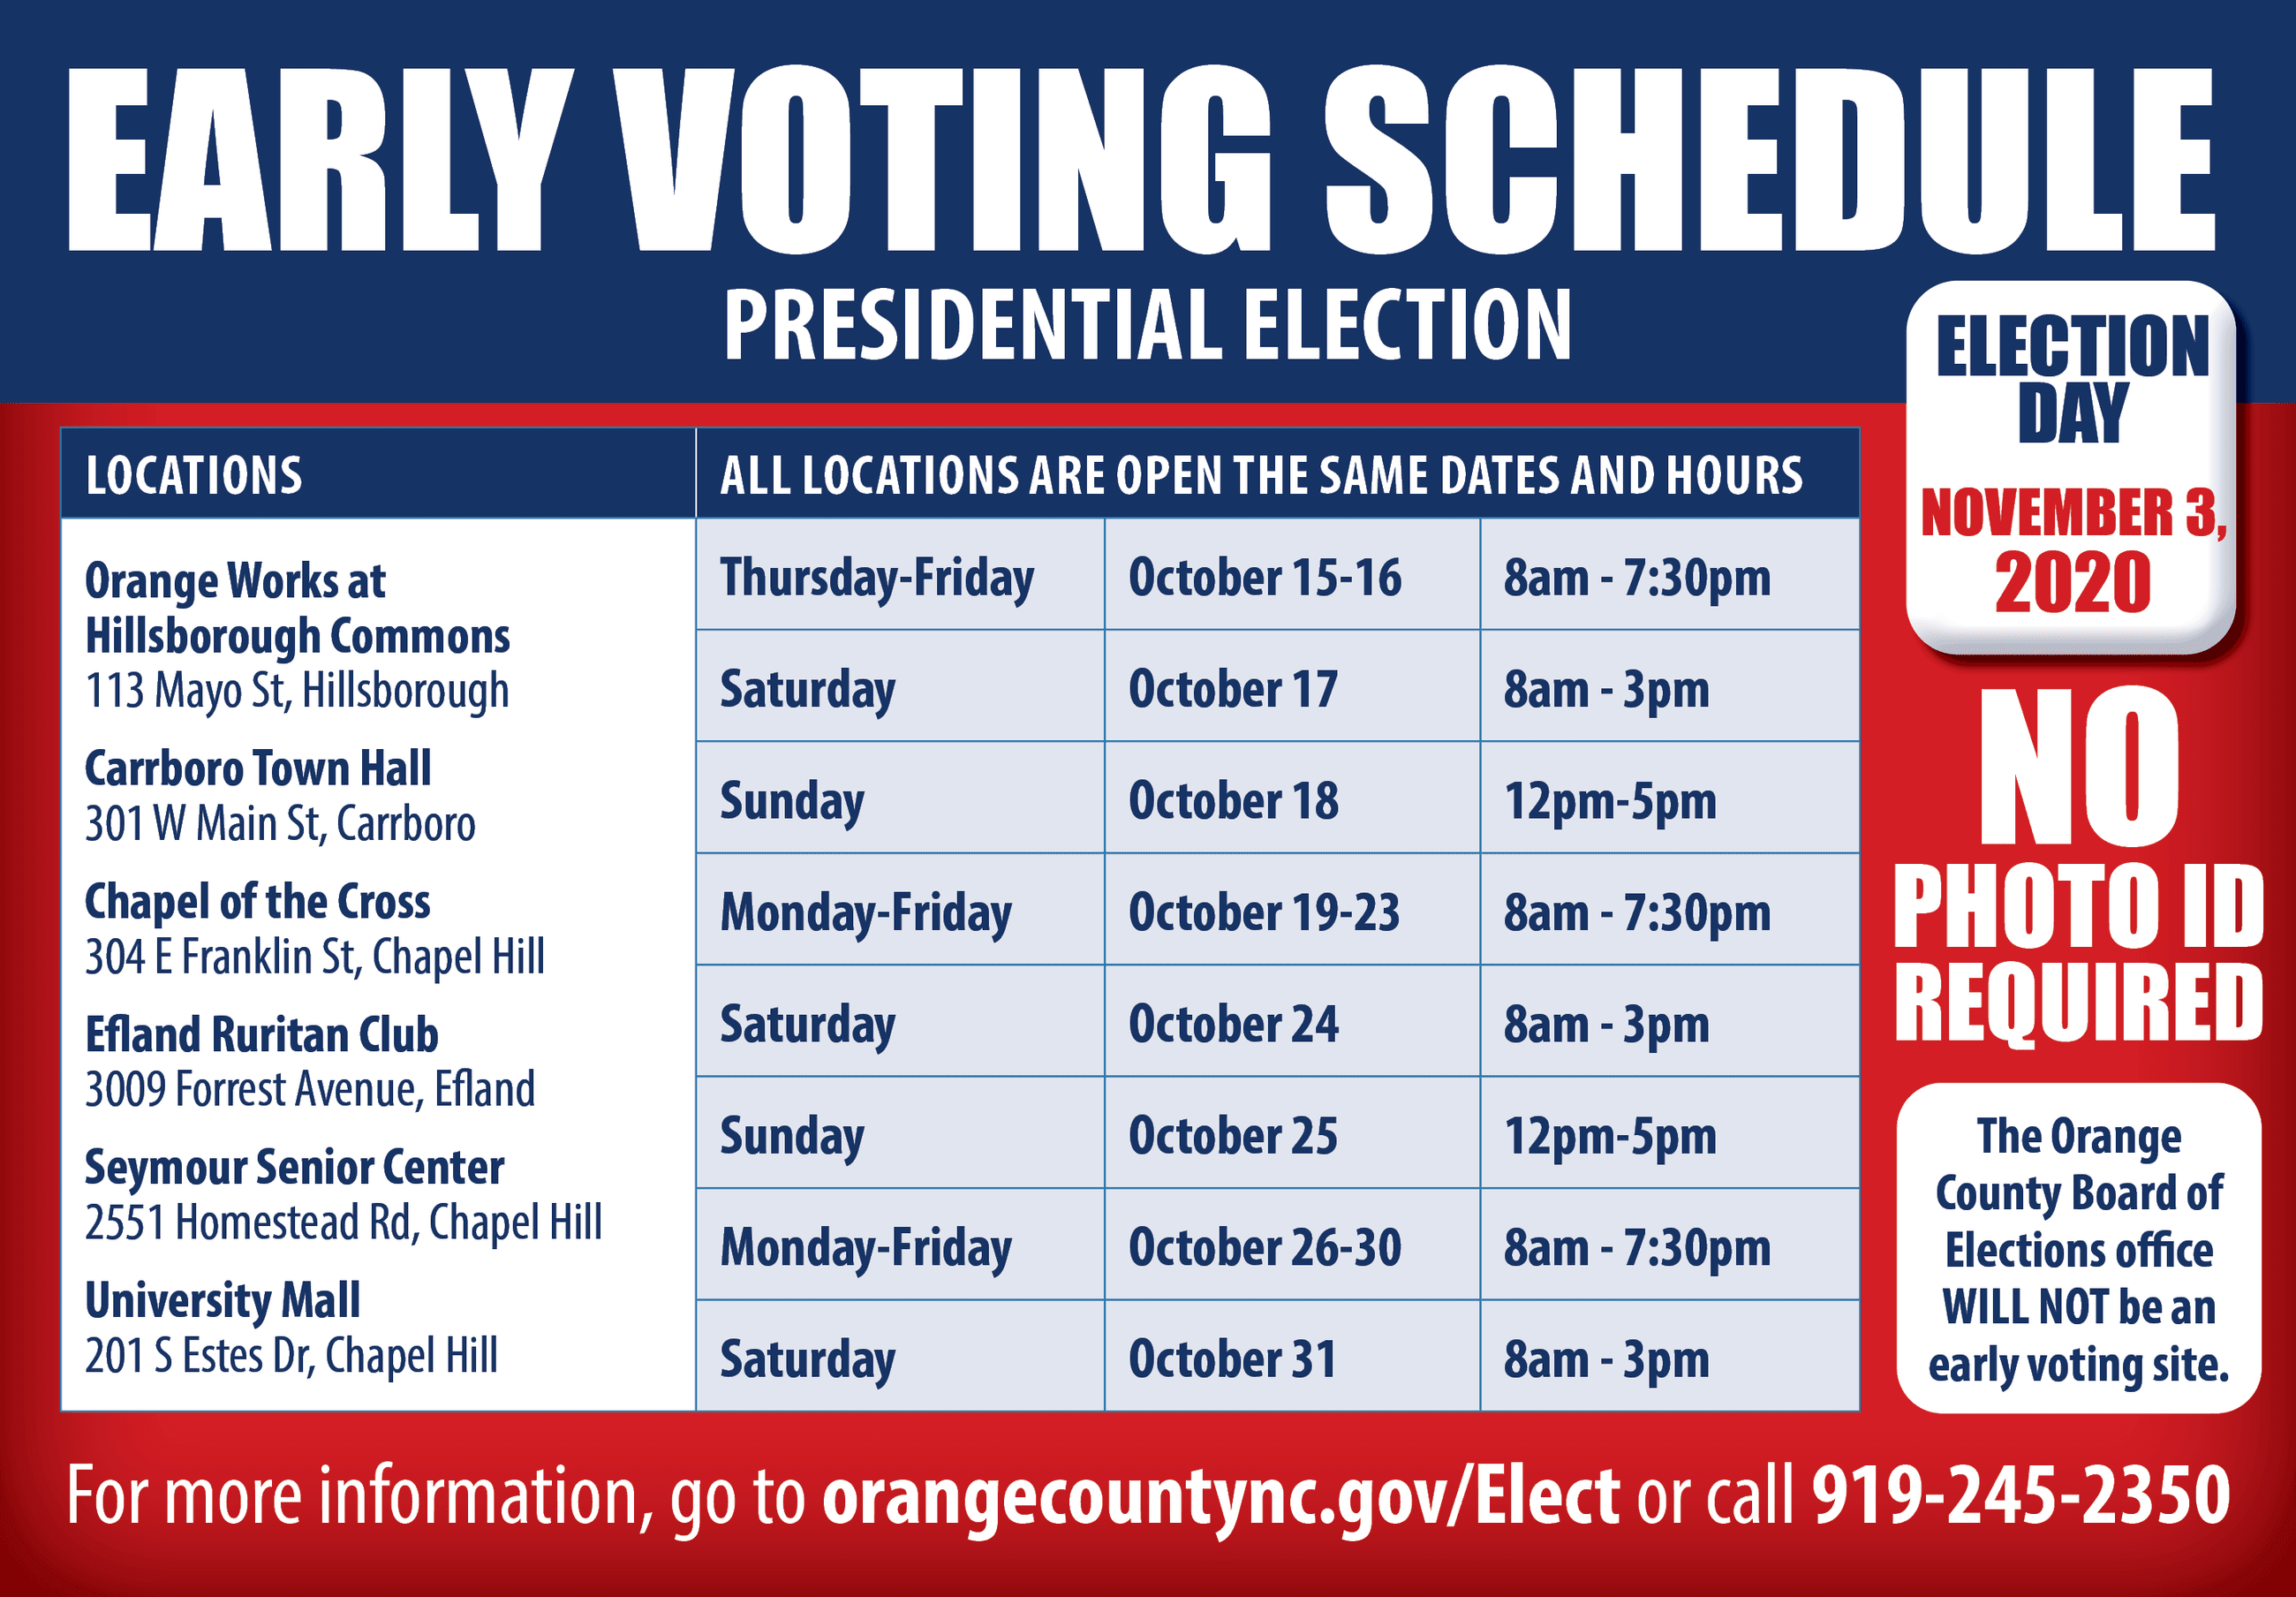 Early Voting Sites in Orange County